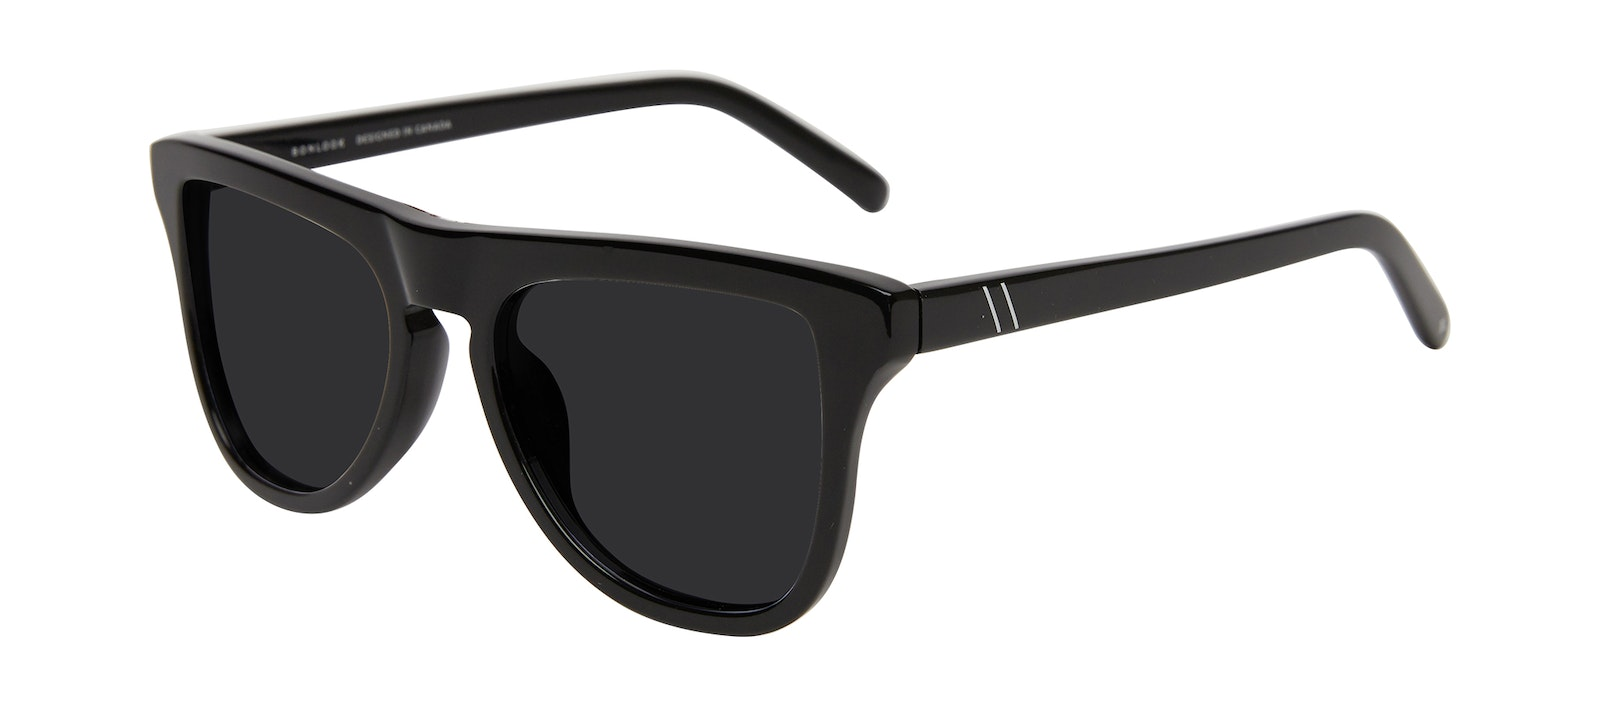 Affordable Fashion Glasses Square Sunglasses Men Social Black Tilt